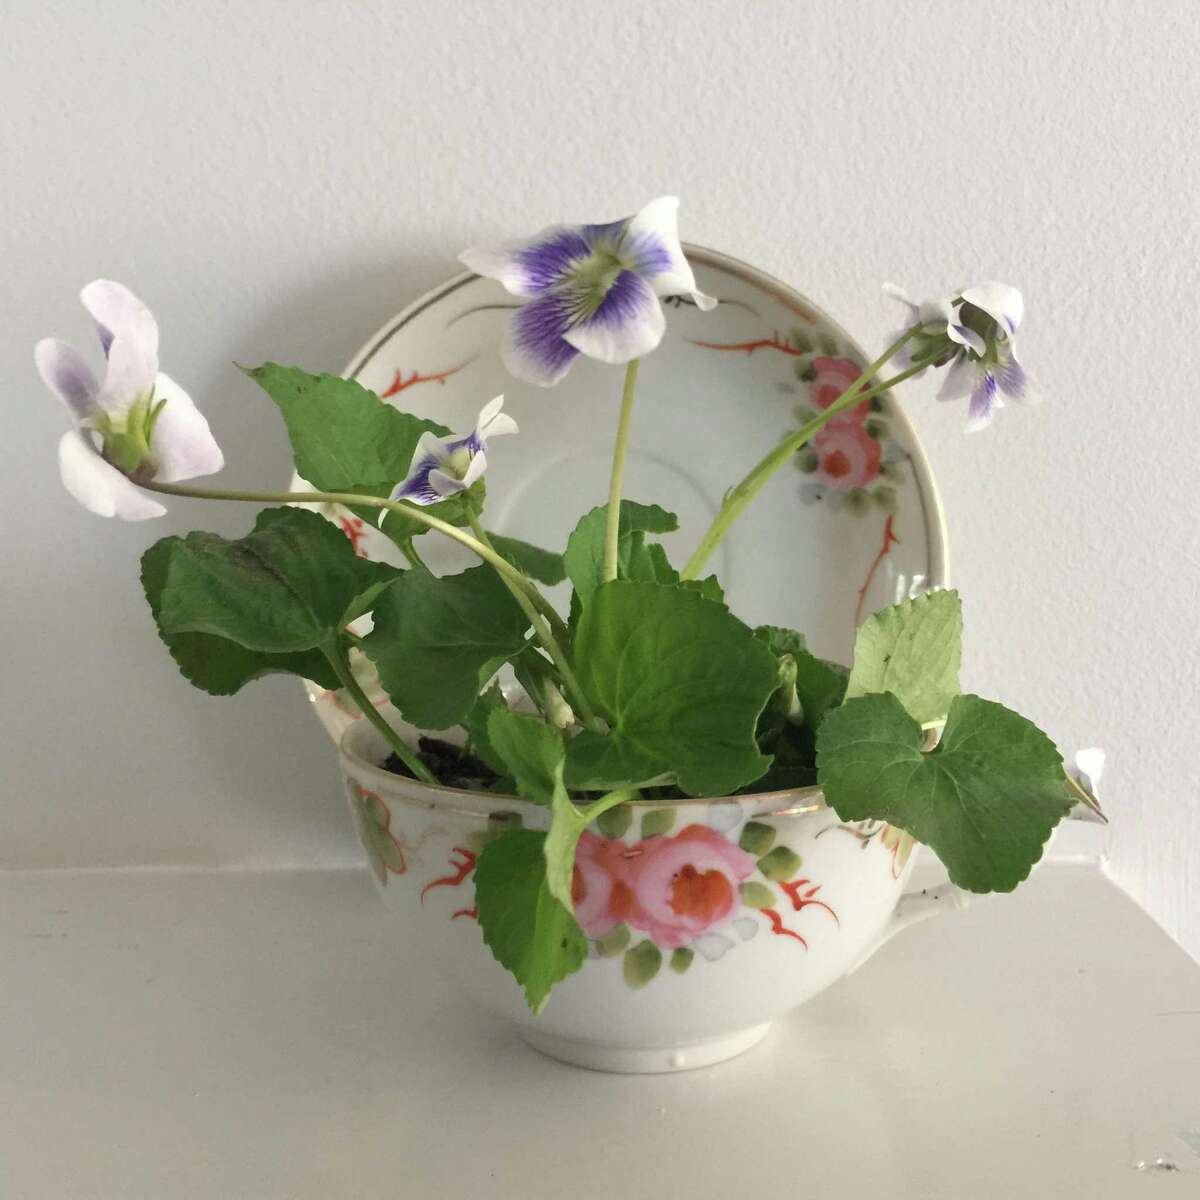 The Wilton Historical Society recently offered a May Day Vintage Tea Cup Workshop for children. The Historical Society has since received a grant from the Elizabeth Raymond Ambler Trust in order to research the history of African Americans in the town.